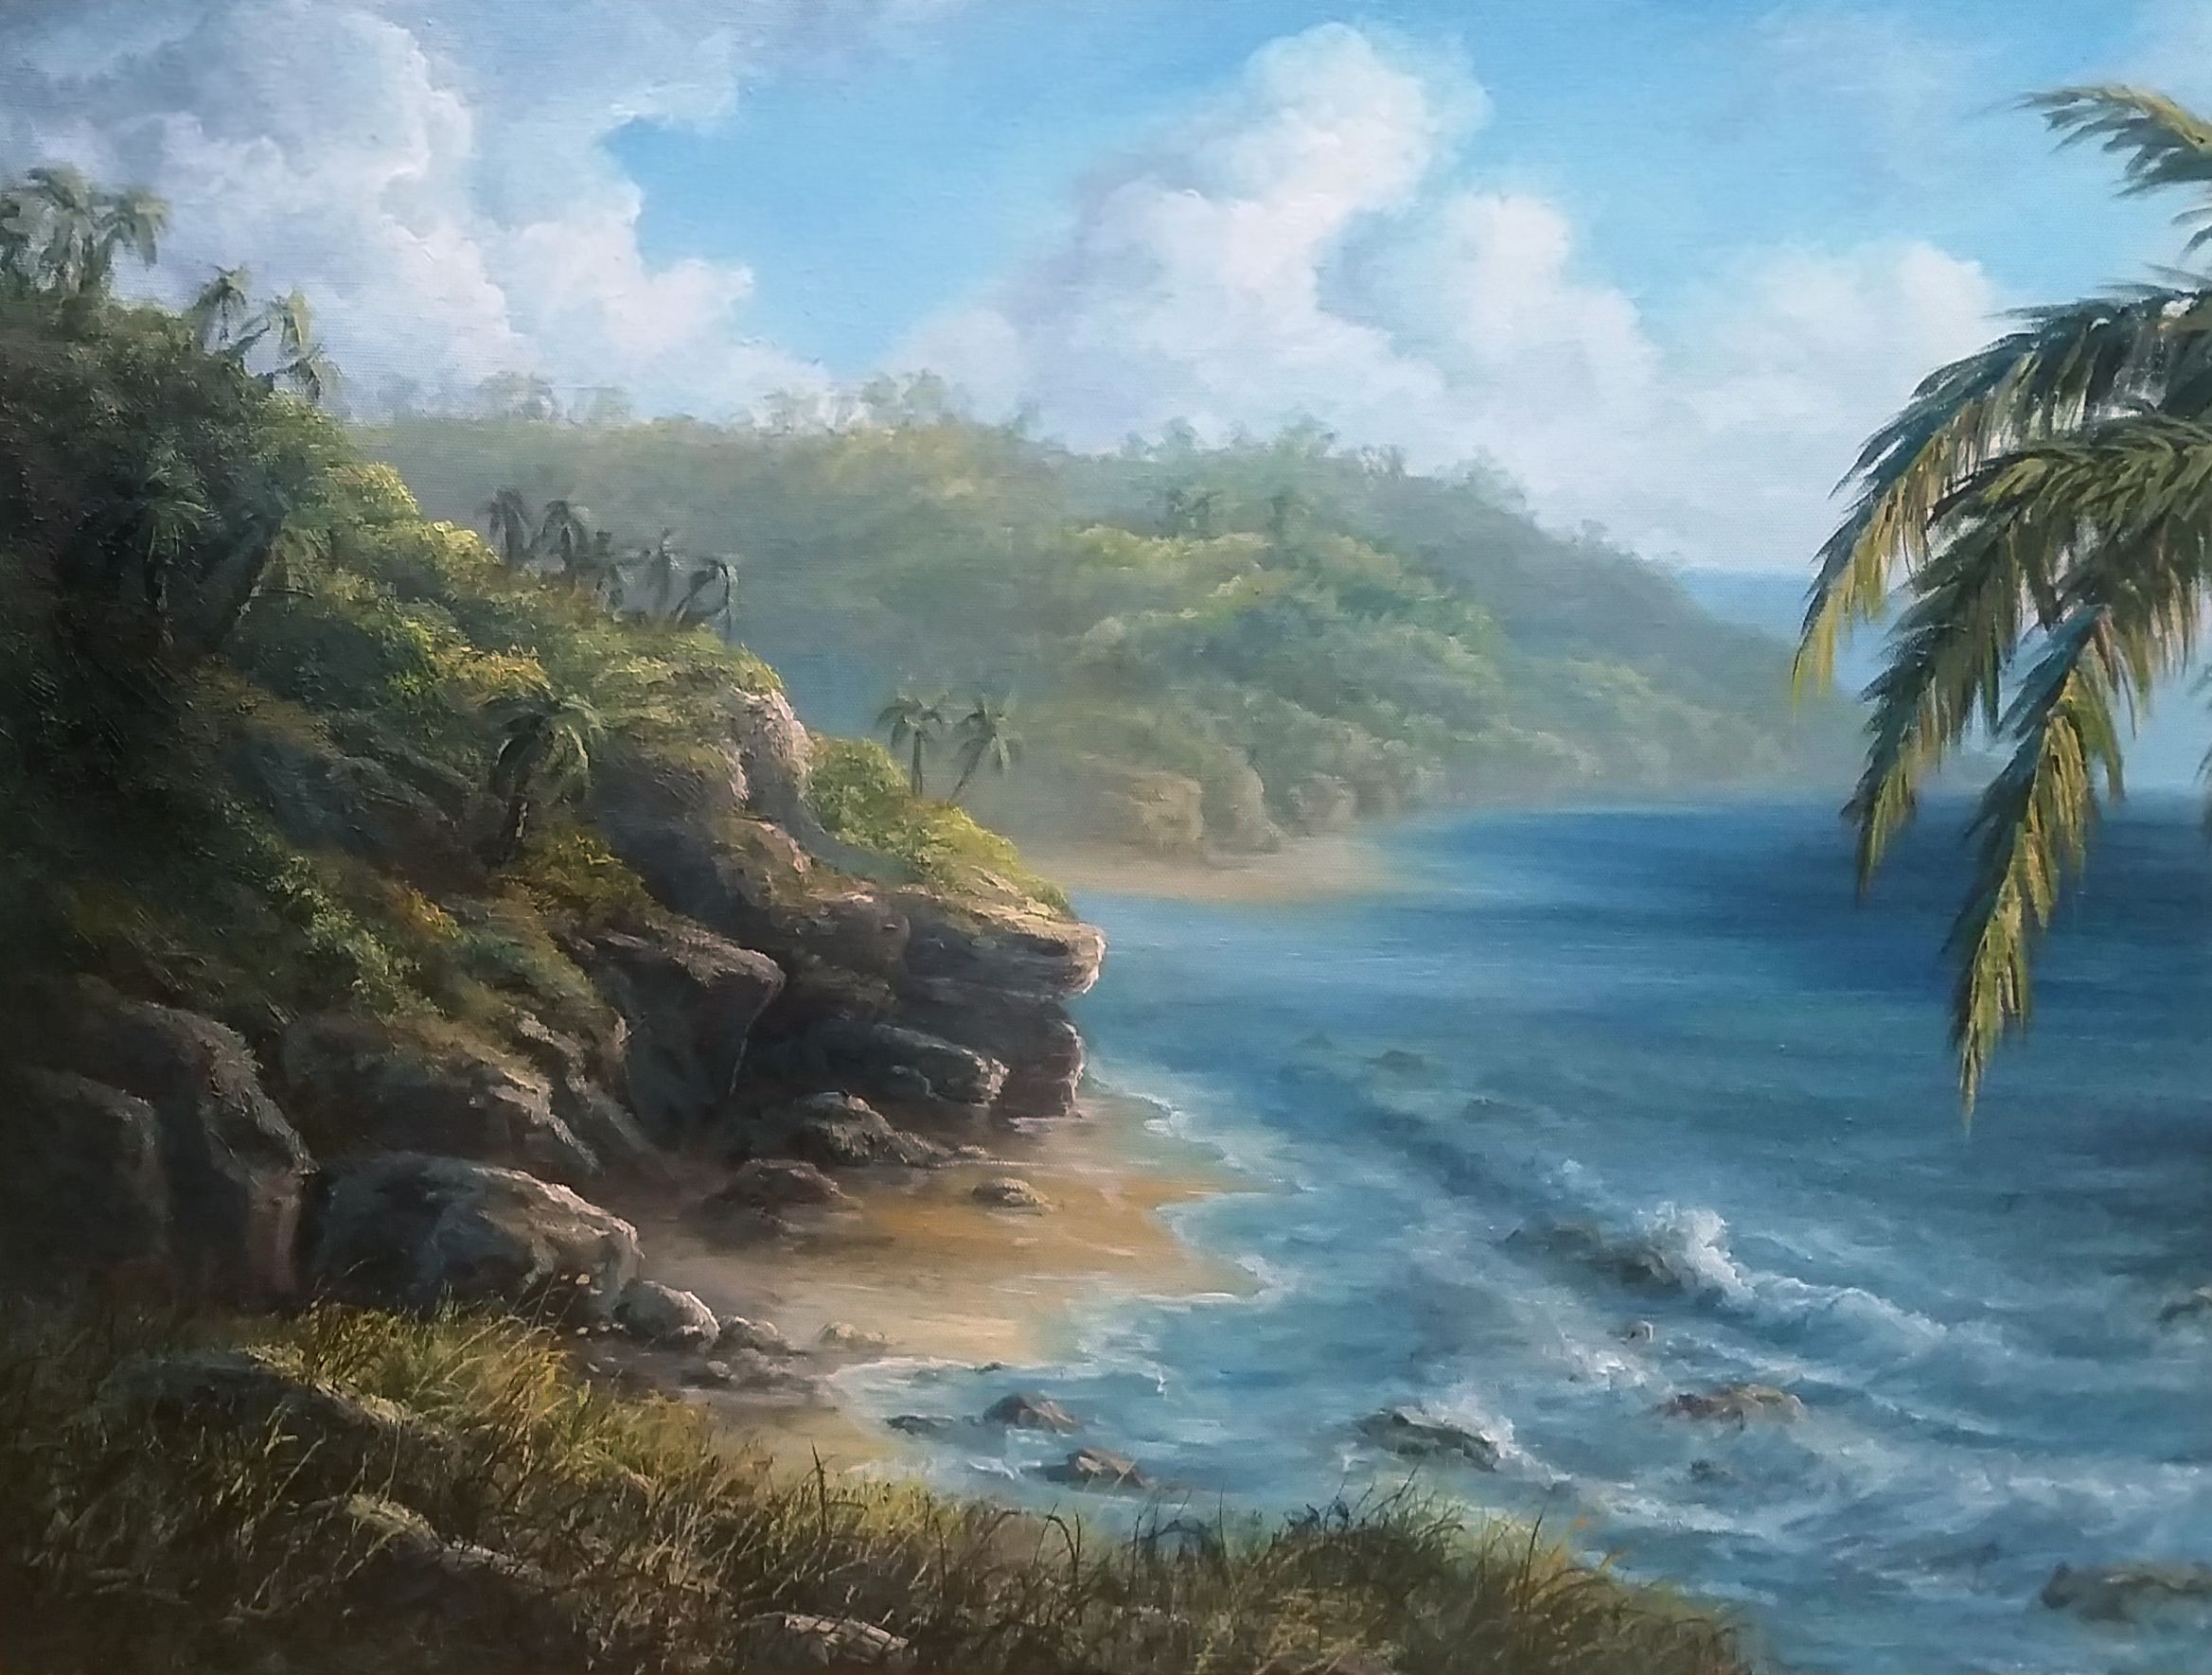 The Rocky Coast Oil Painting By Kevin Hill Watch Short Oil Painting Lessons On Youtube Kevinoilpainting V Kevin Hill Paintings Kevin Hill Landscape Artist